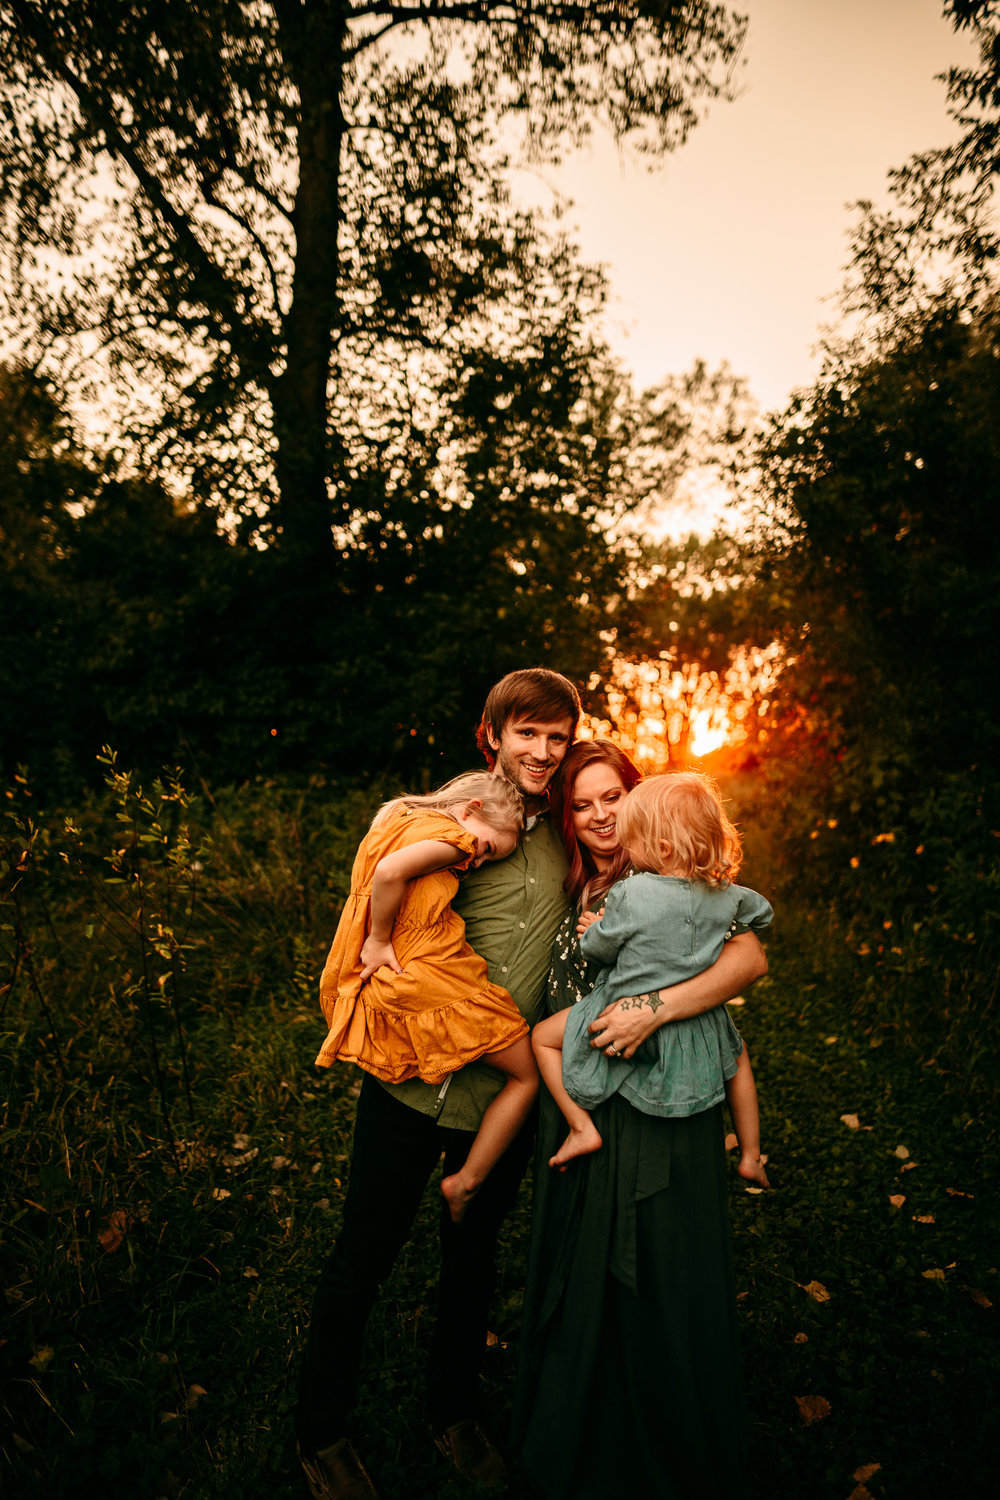 FREESE FAMILY MADE BELOVED PHOTOGRAPHY-48.jpg